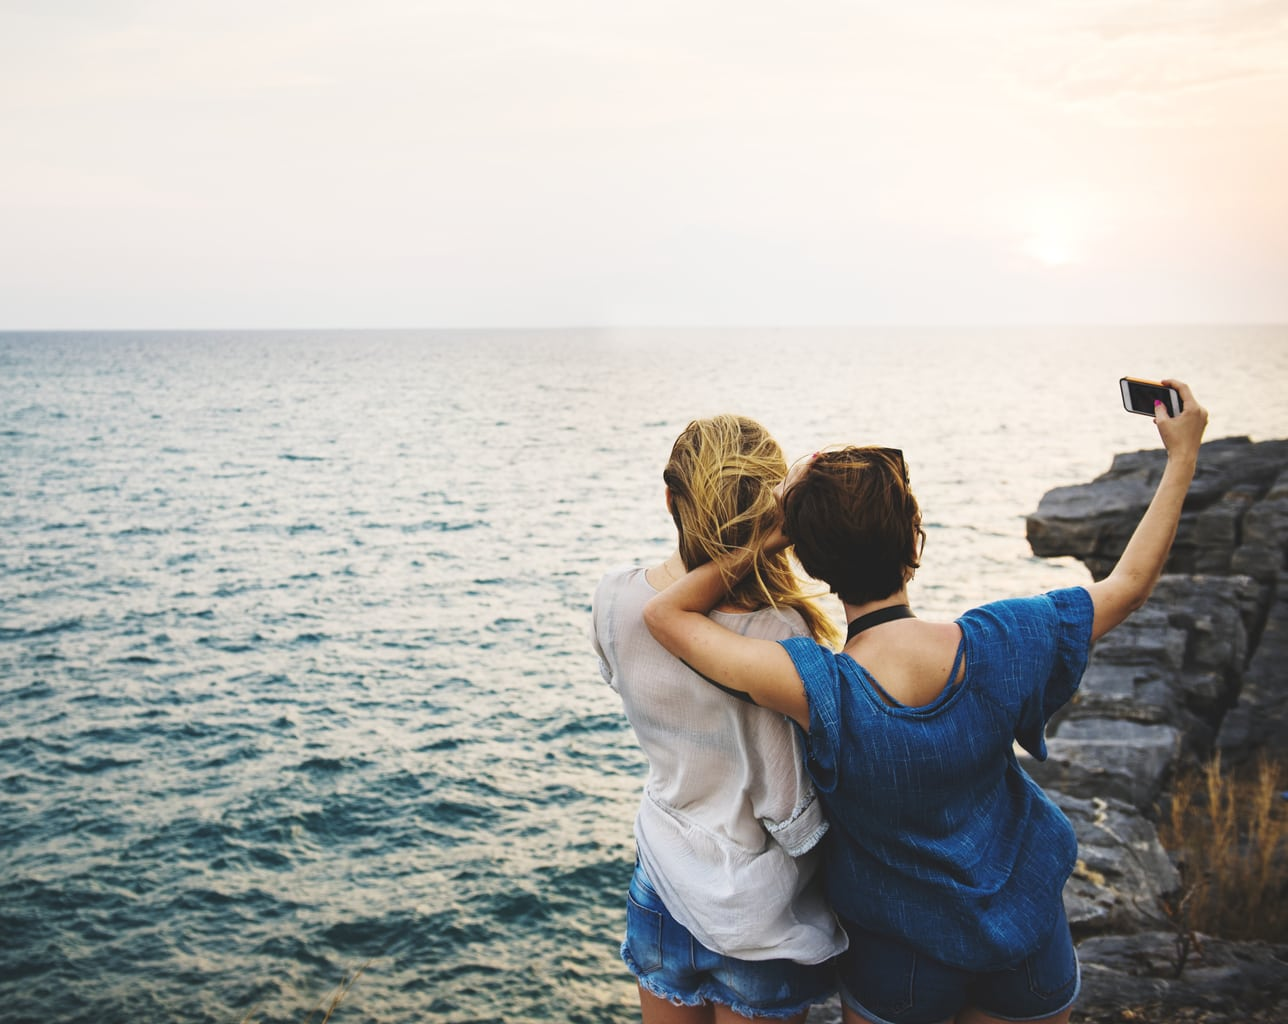 Photo of a blonde and brunette girl taking a photo on the edge of a cliff.